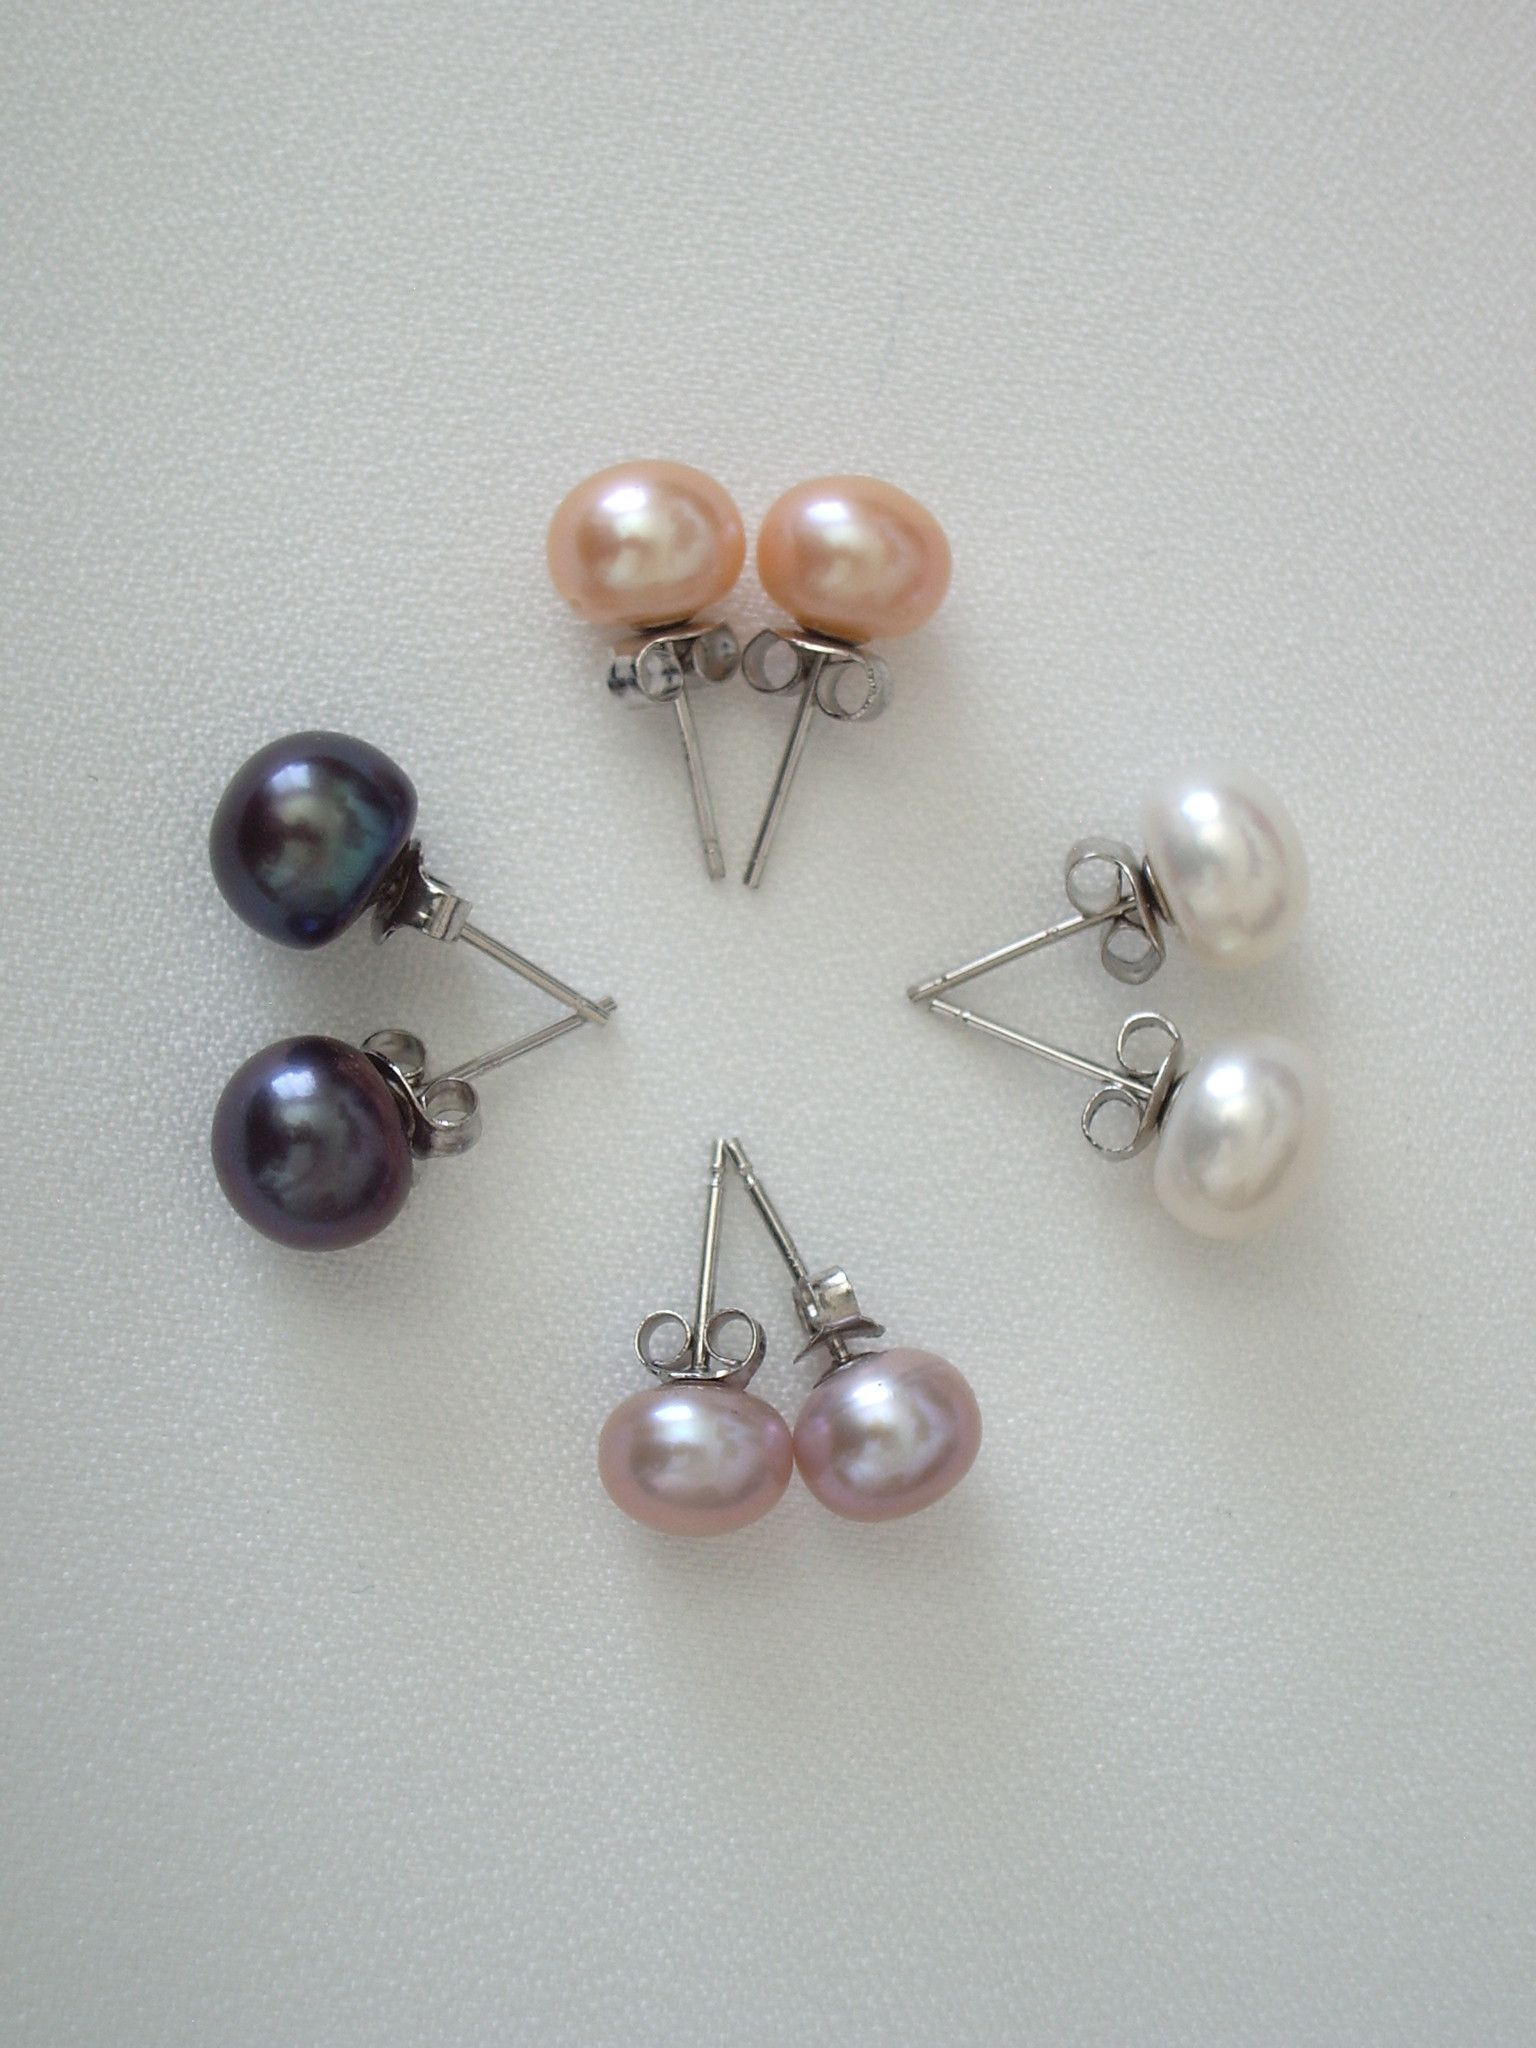 Cultured Freshwater Pearl Earrings 7mm Pearls